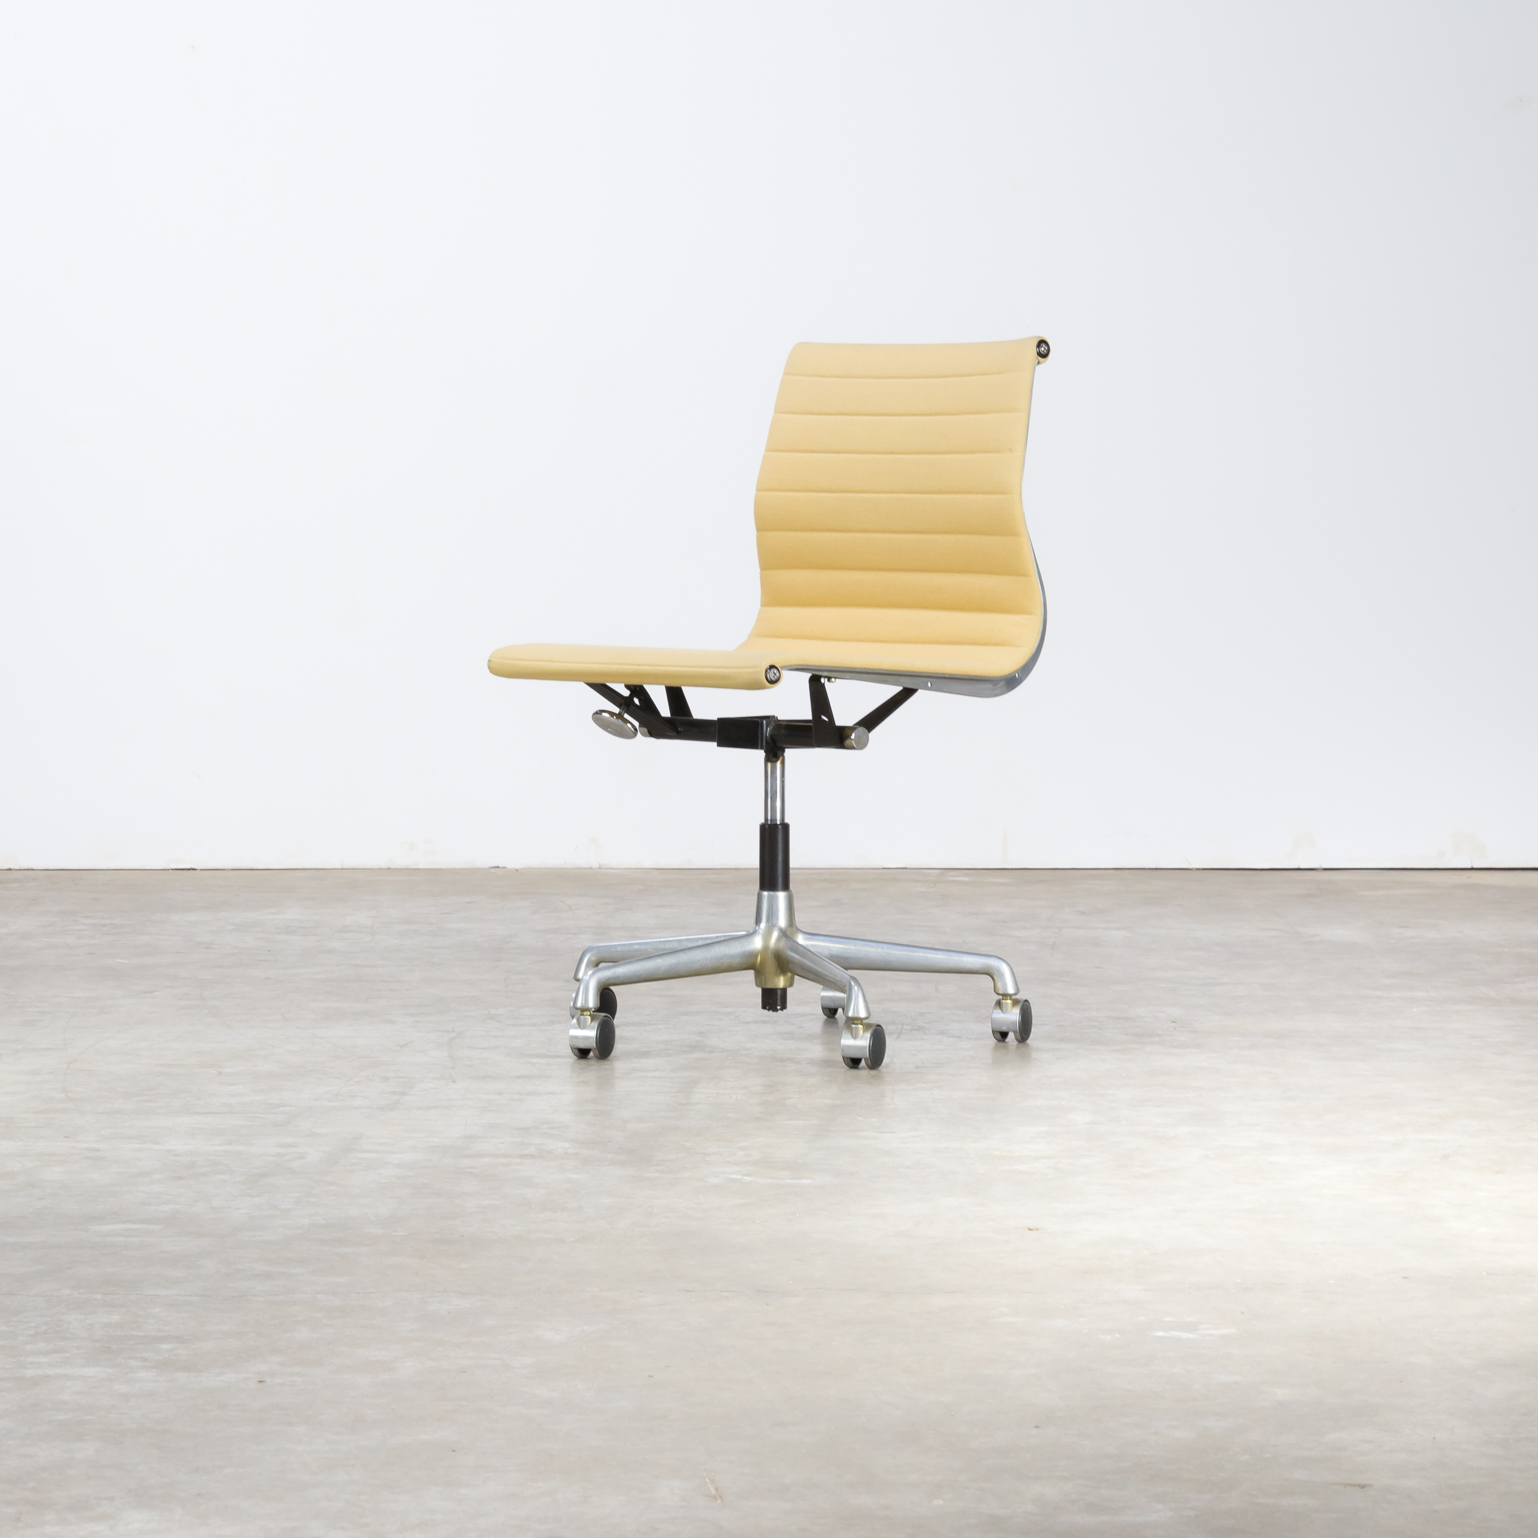 Charles and ray eames ea118 fauteuil for herman miller for Charles eames kopie